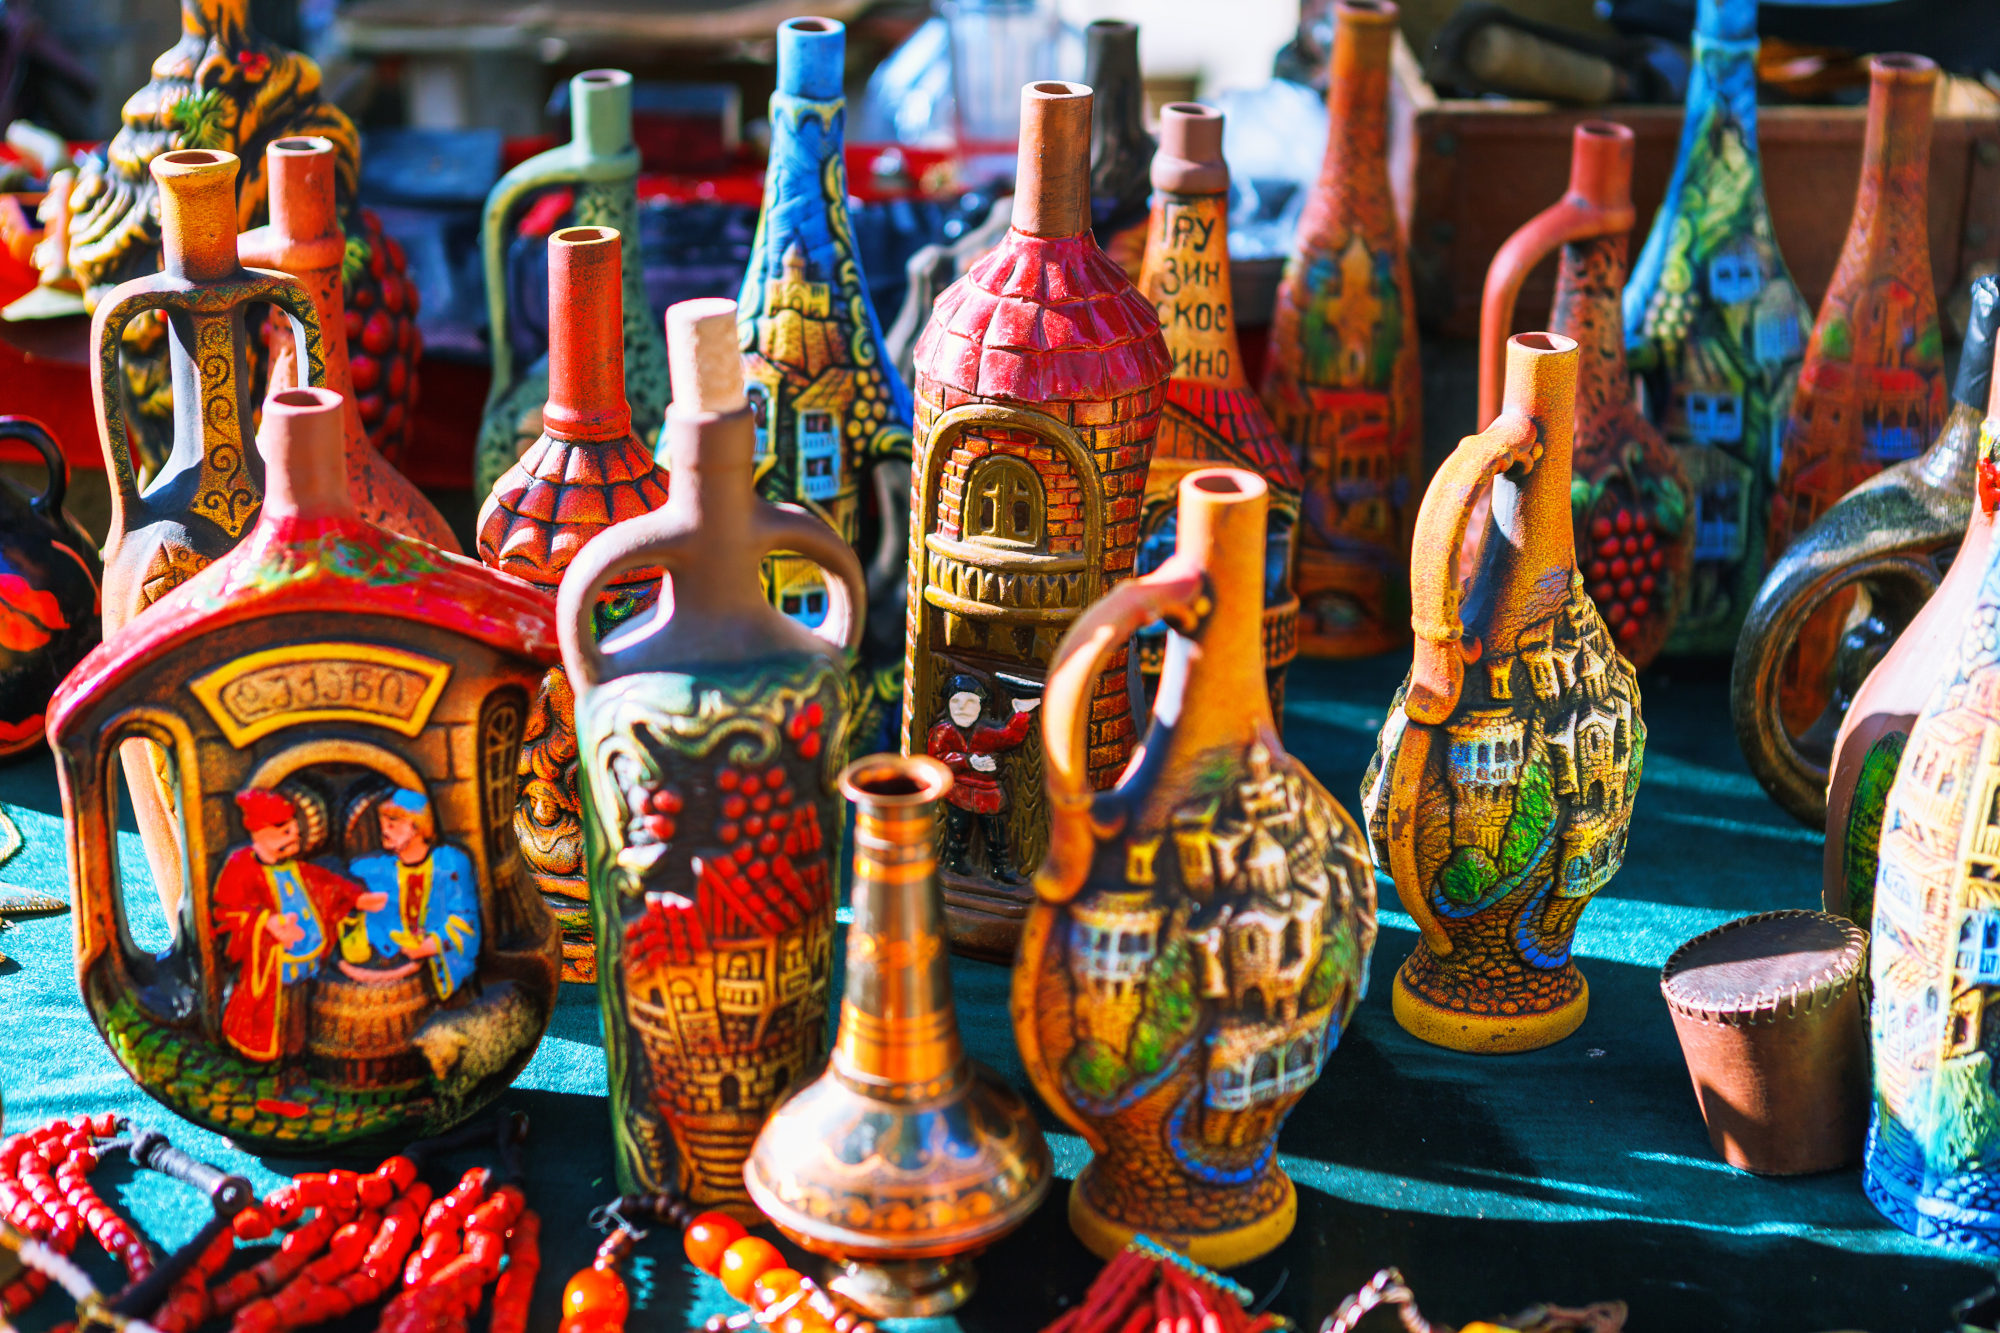 Colourful flea market in Tbilisi